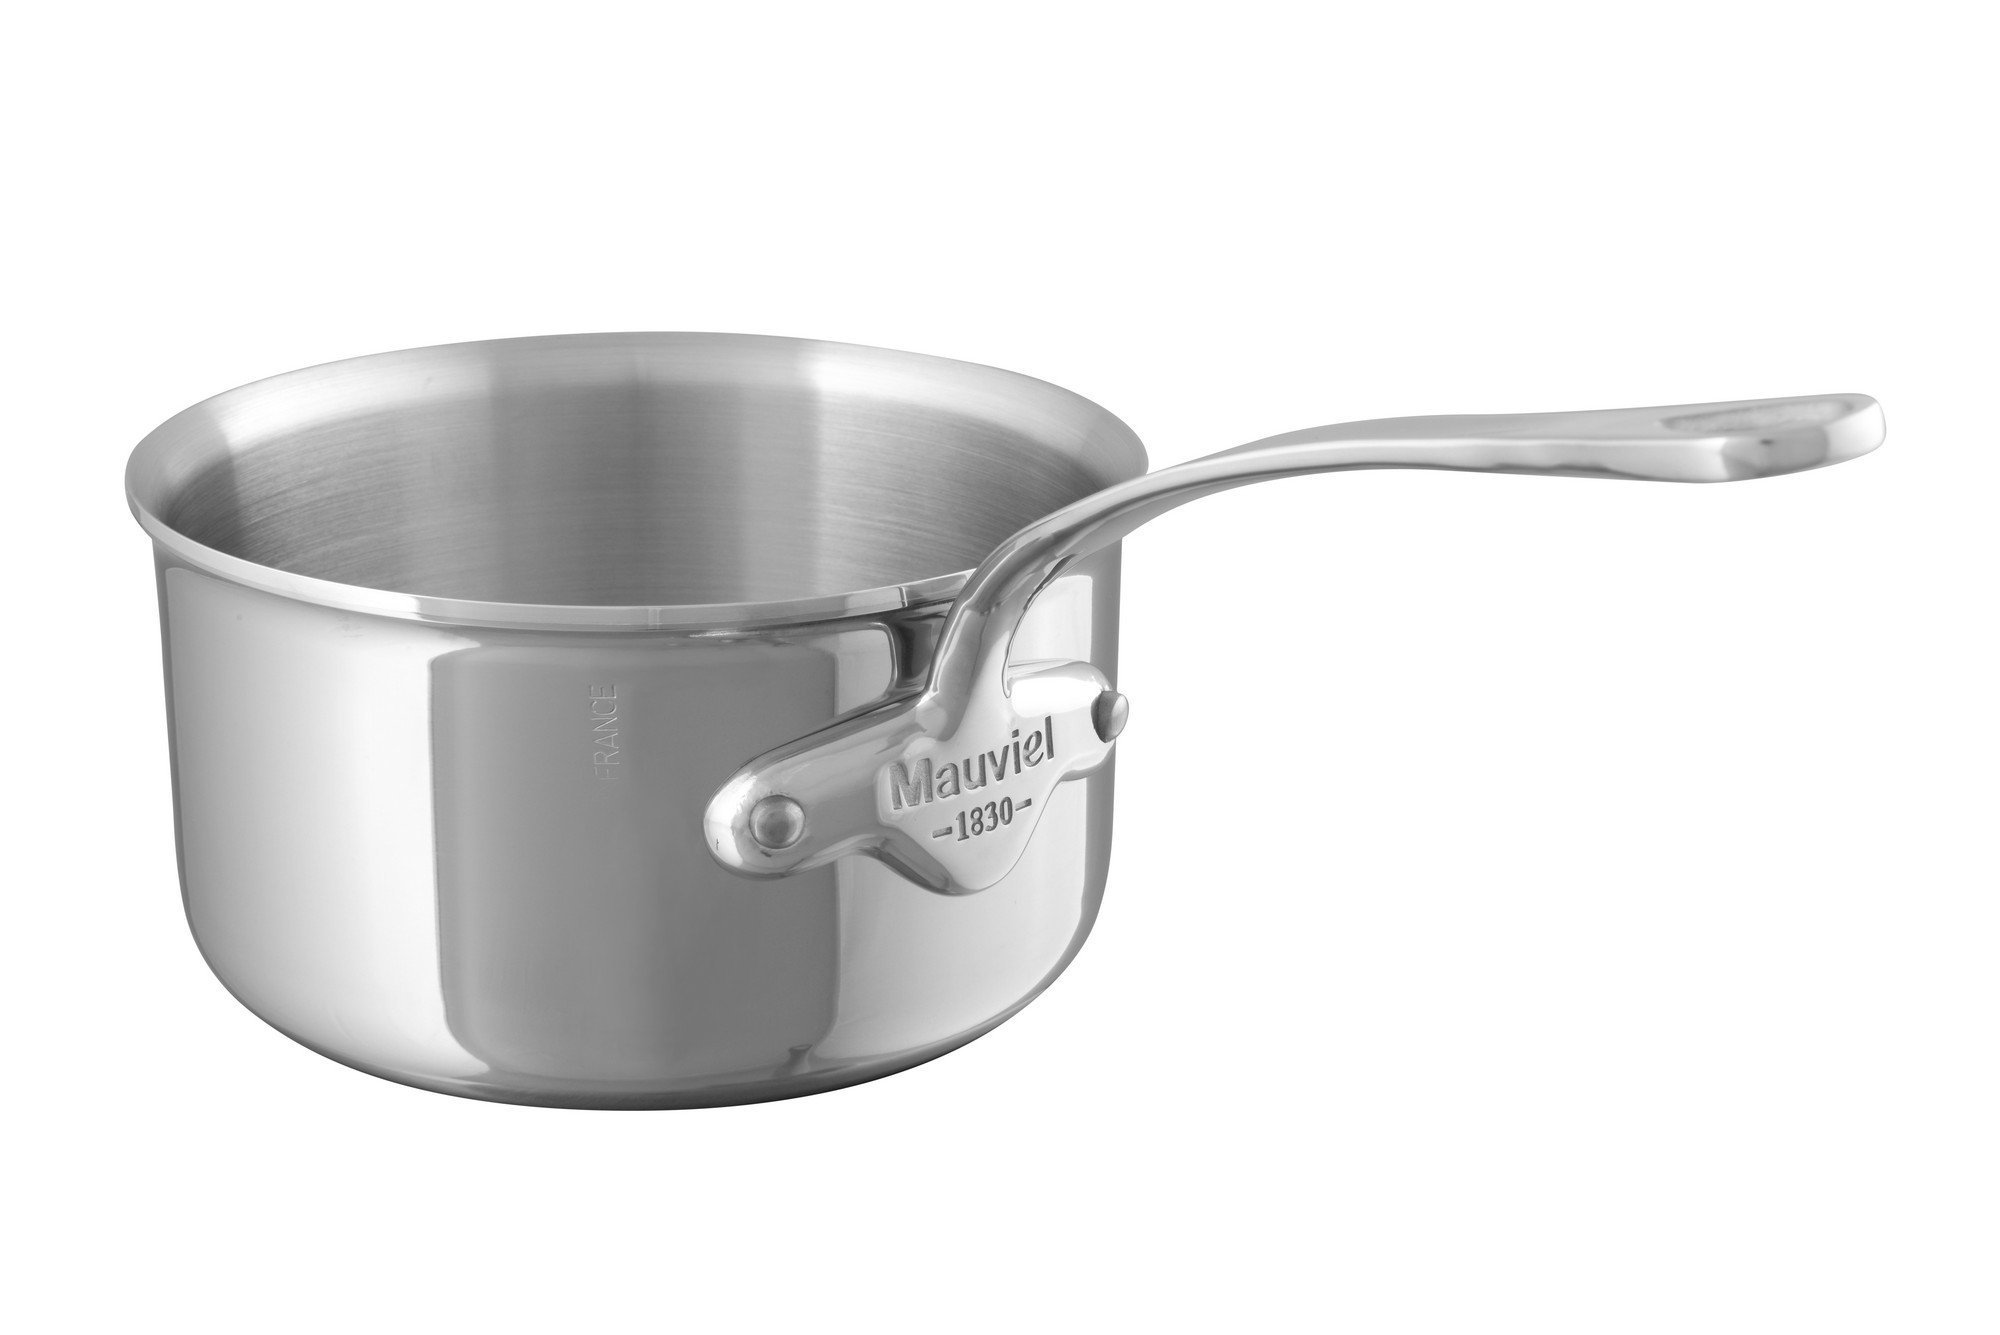 Mauviel 5210.12 M Cook Saucepan 12CM Cast SS Hdl 2.6MM M'Cook, 12'', Stainless Steel